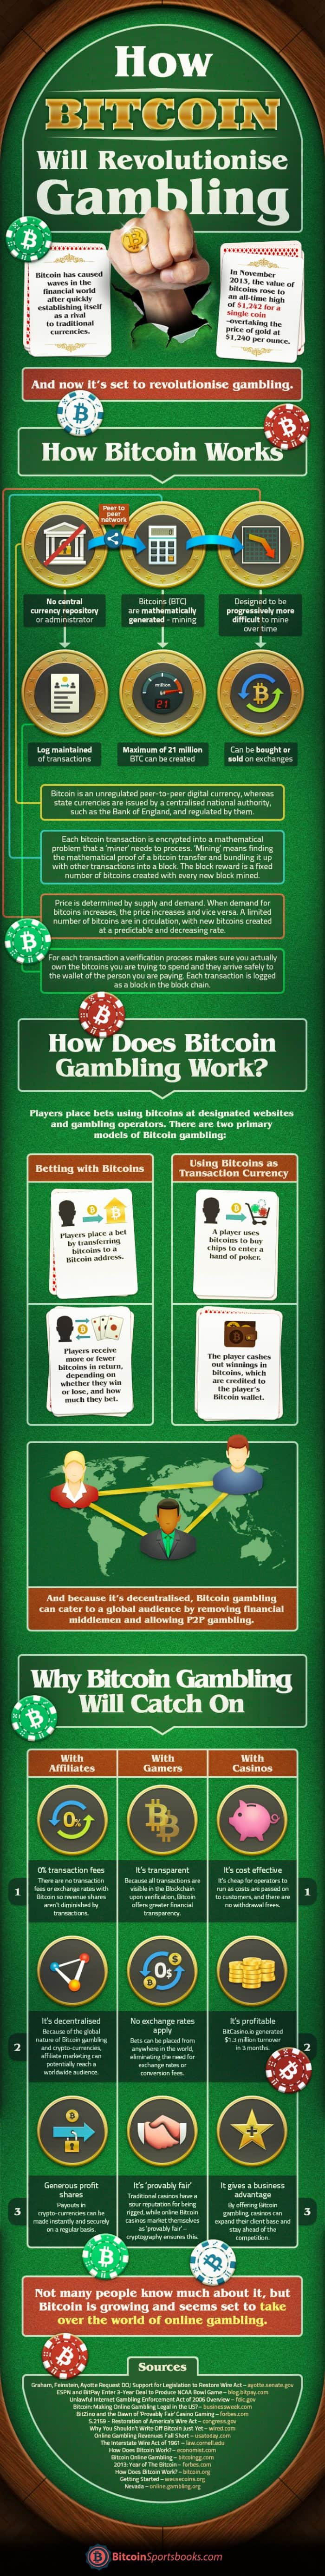 How Bitcoin Will Revolutionize Gambling Infographic